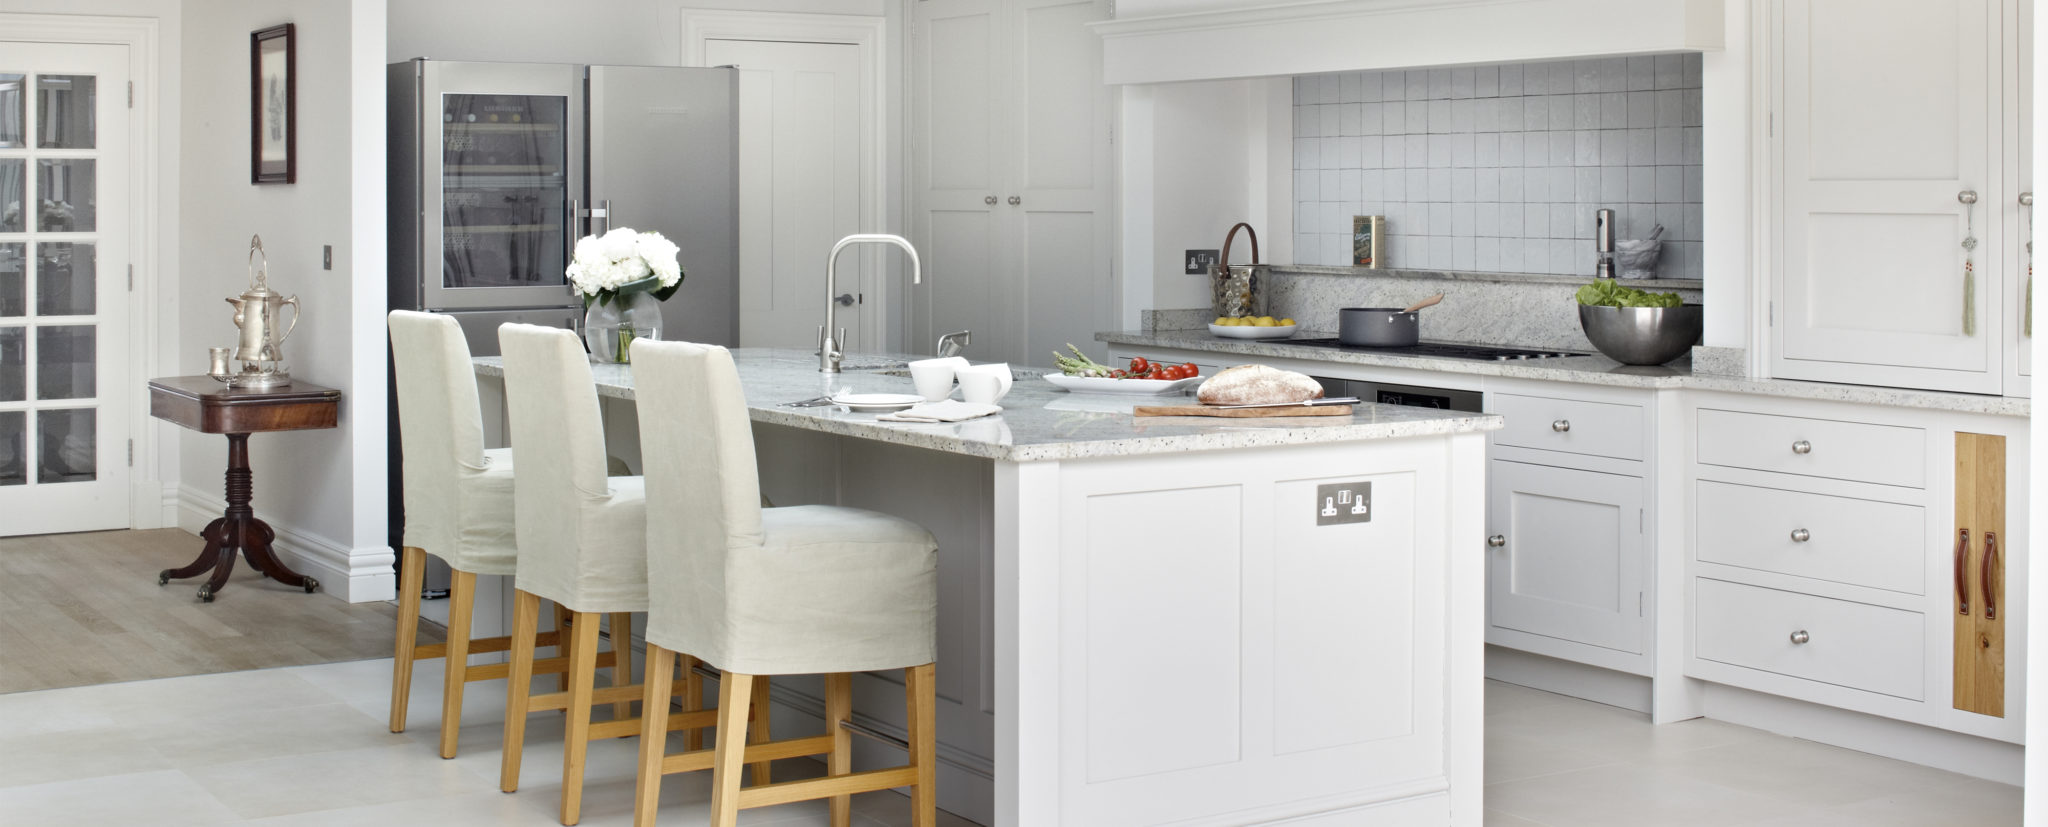 Large country kitchen design in Surrey - light grey kitchen cabinets and Kashmir white granite countertops